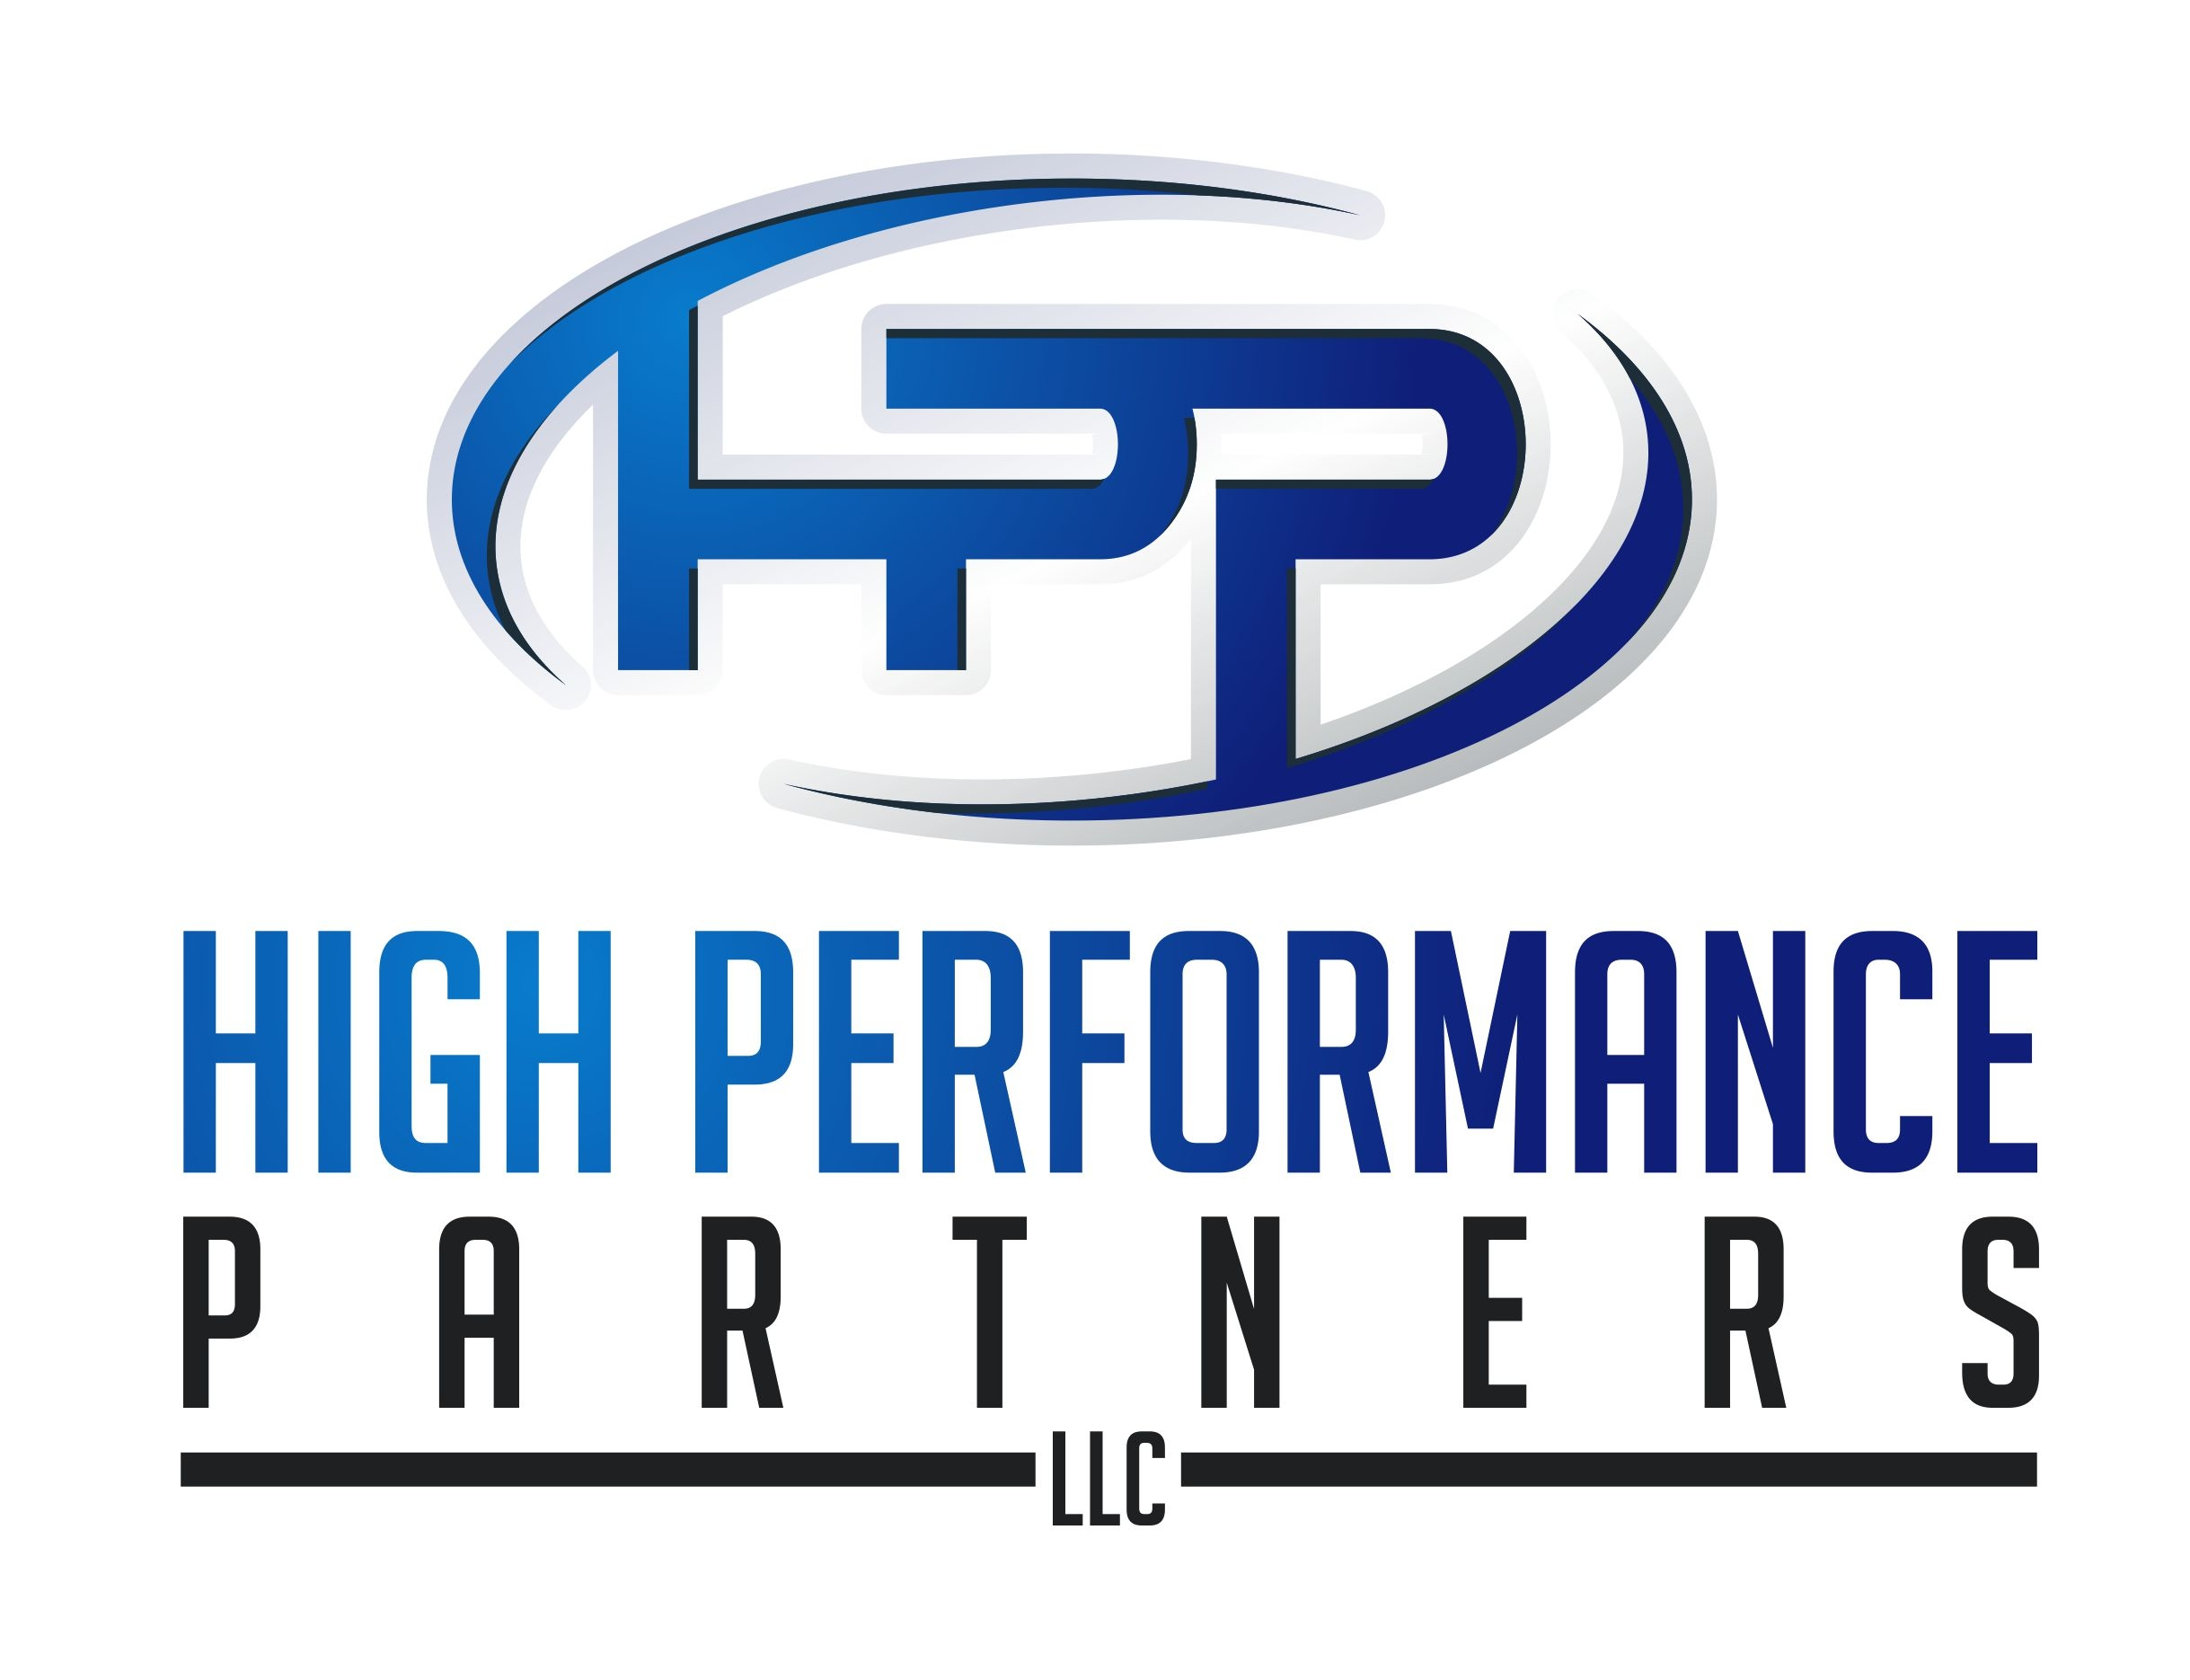 High Performance Partners LLC